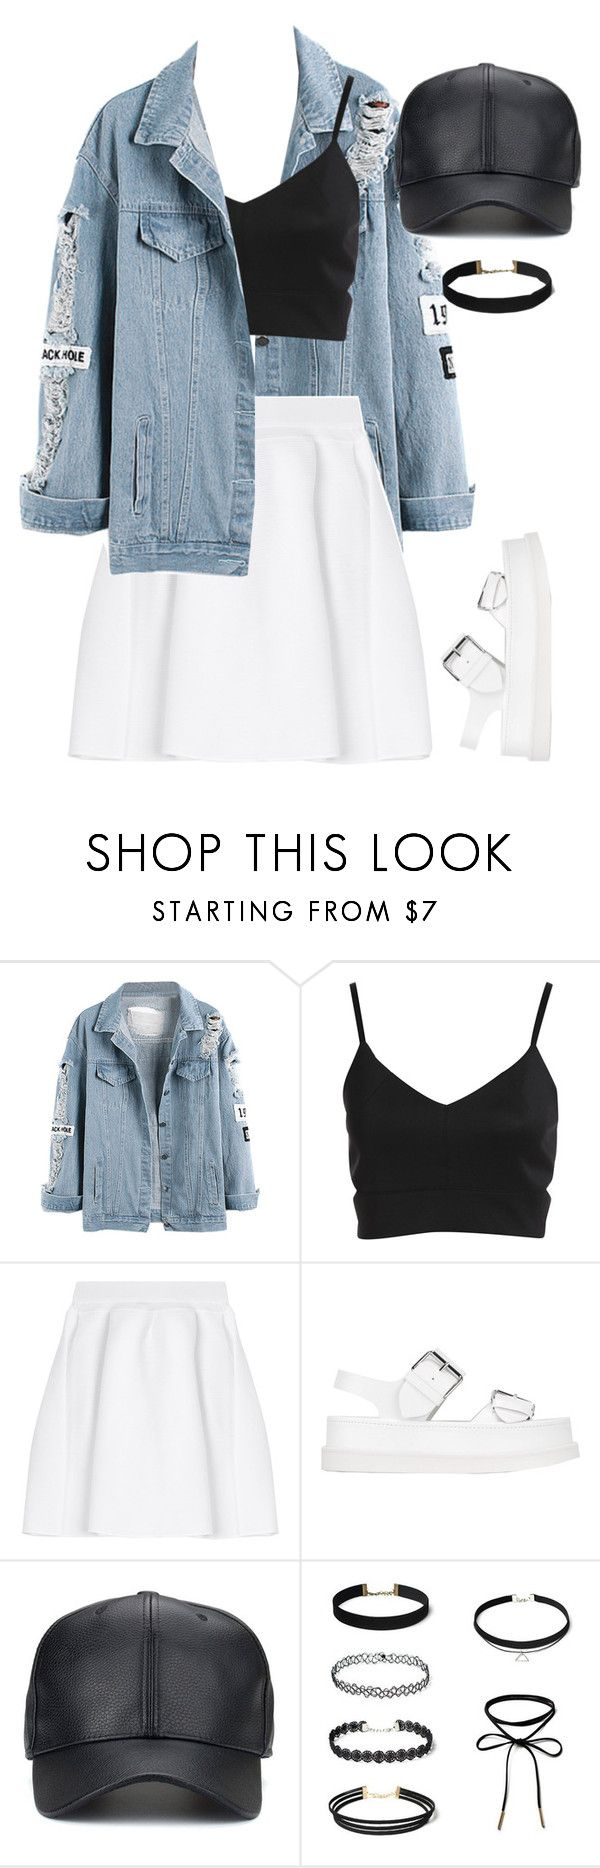 """Untitled #406"" by tired-unicorn ❤ liked on Polyvore featuring malo and STELLA McCARTNEY"